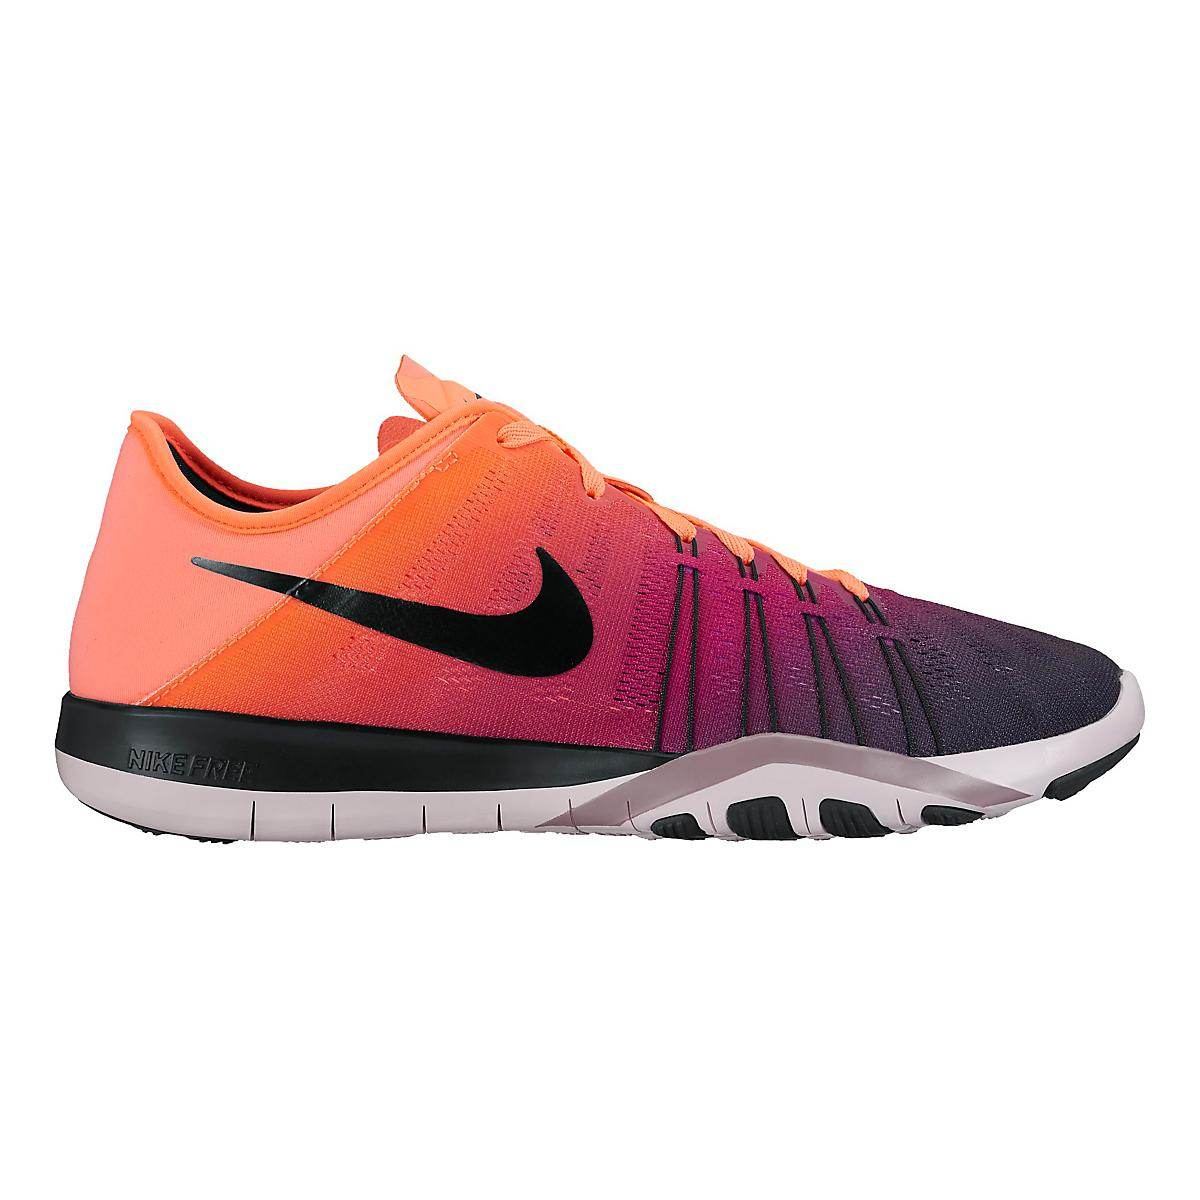 71d5efc3c4bf Womens Nike Free TR 6 Spectrum Cross Training Shoe at Road Runner Sports